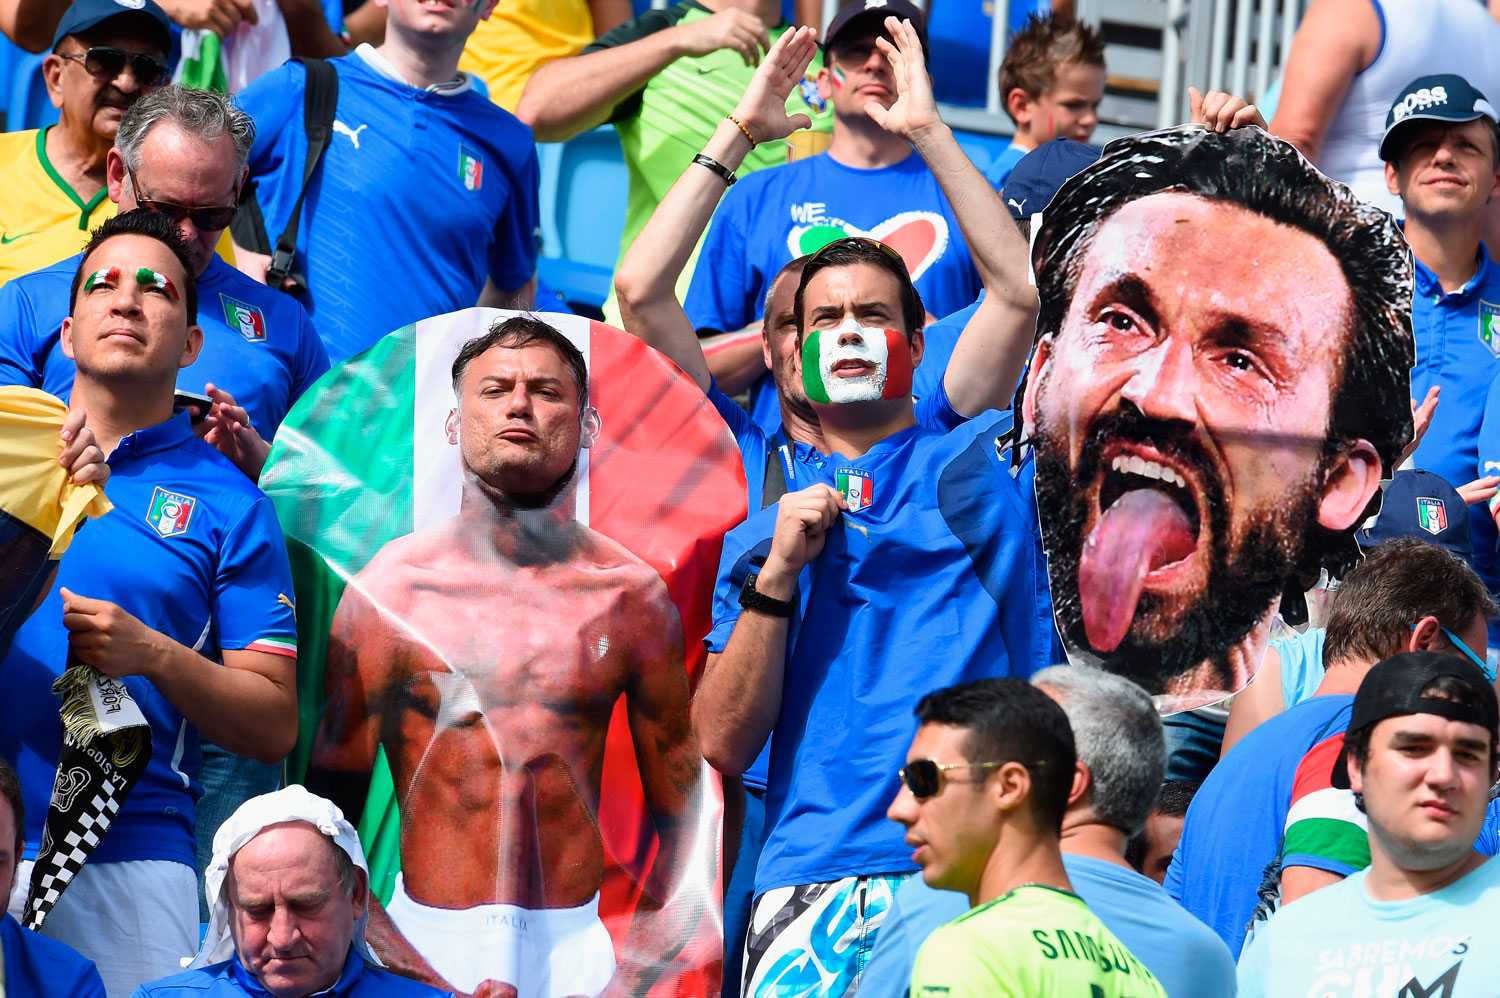 Italy fans hold a cutout of Andrea Pirlo during the match between Italy and Uruguay at Estadio das Dunas on June 24, 2014 in Natal, Brazil.